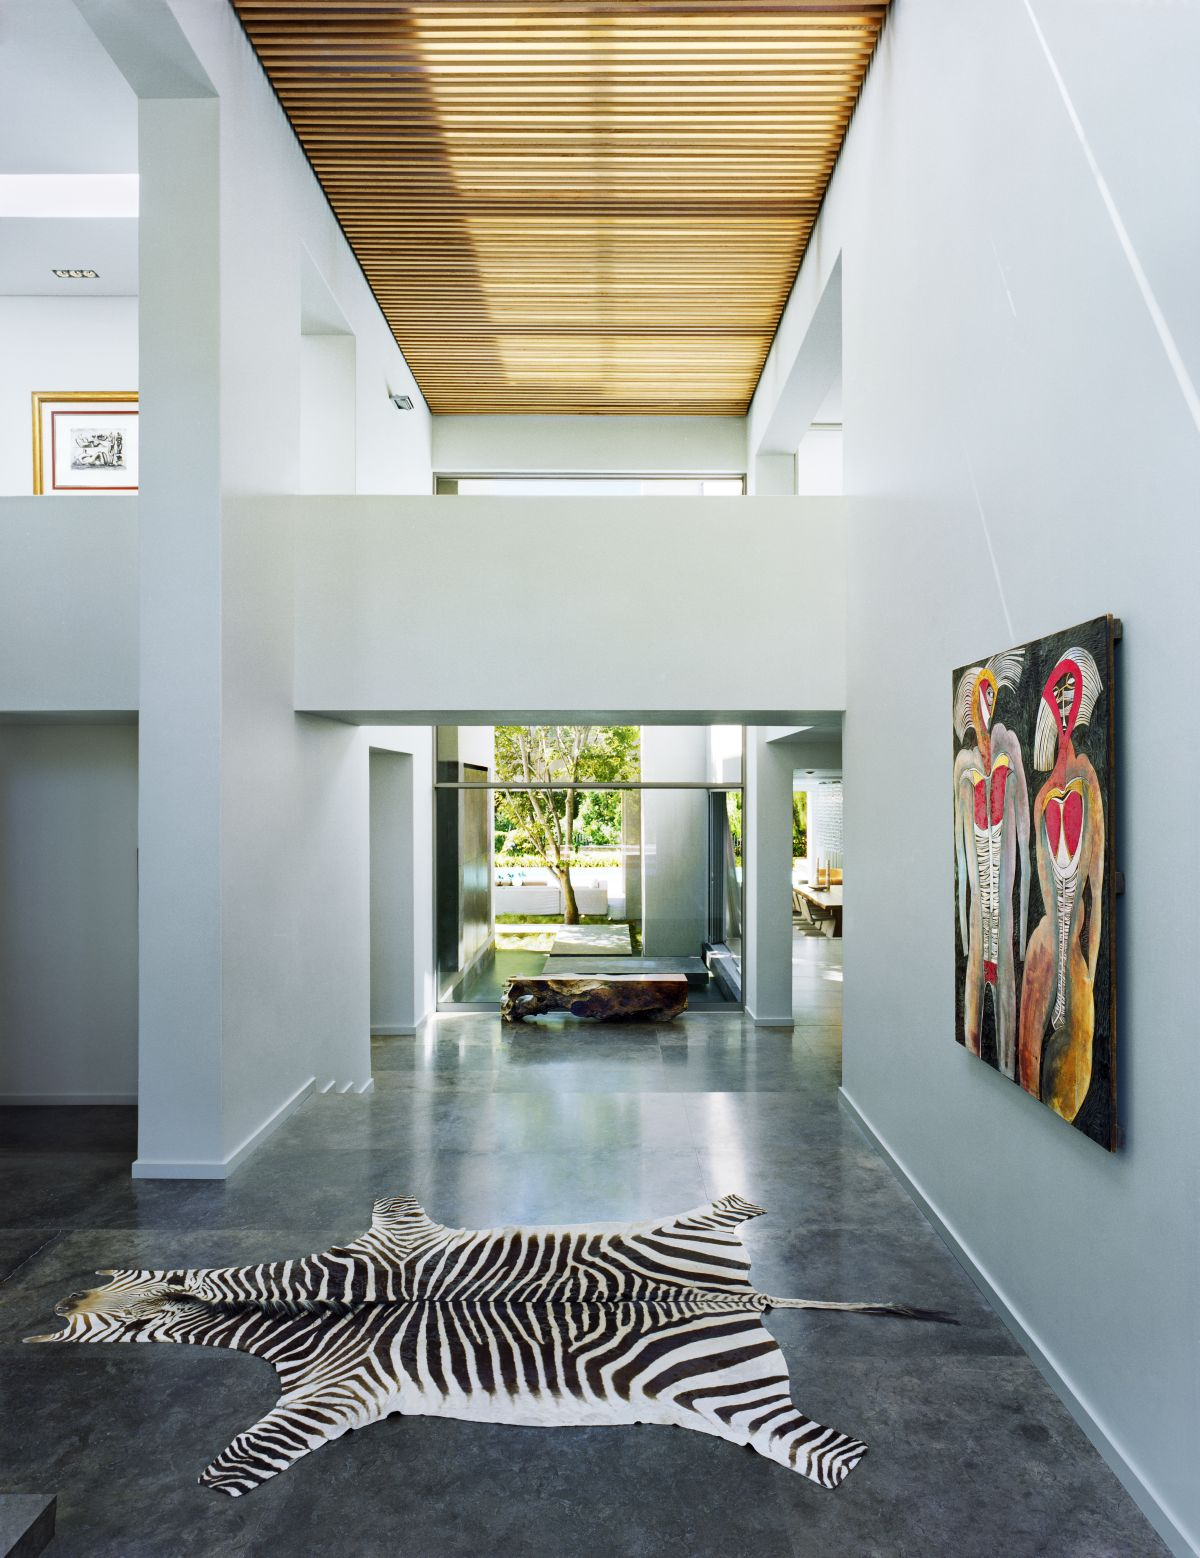 A large corridor with high ceilings is decorated with the owner's personal art pieces